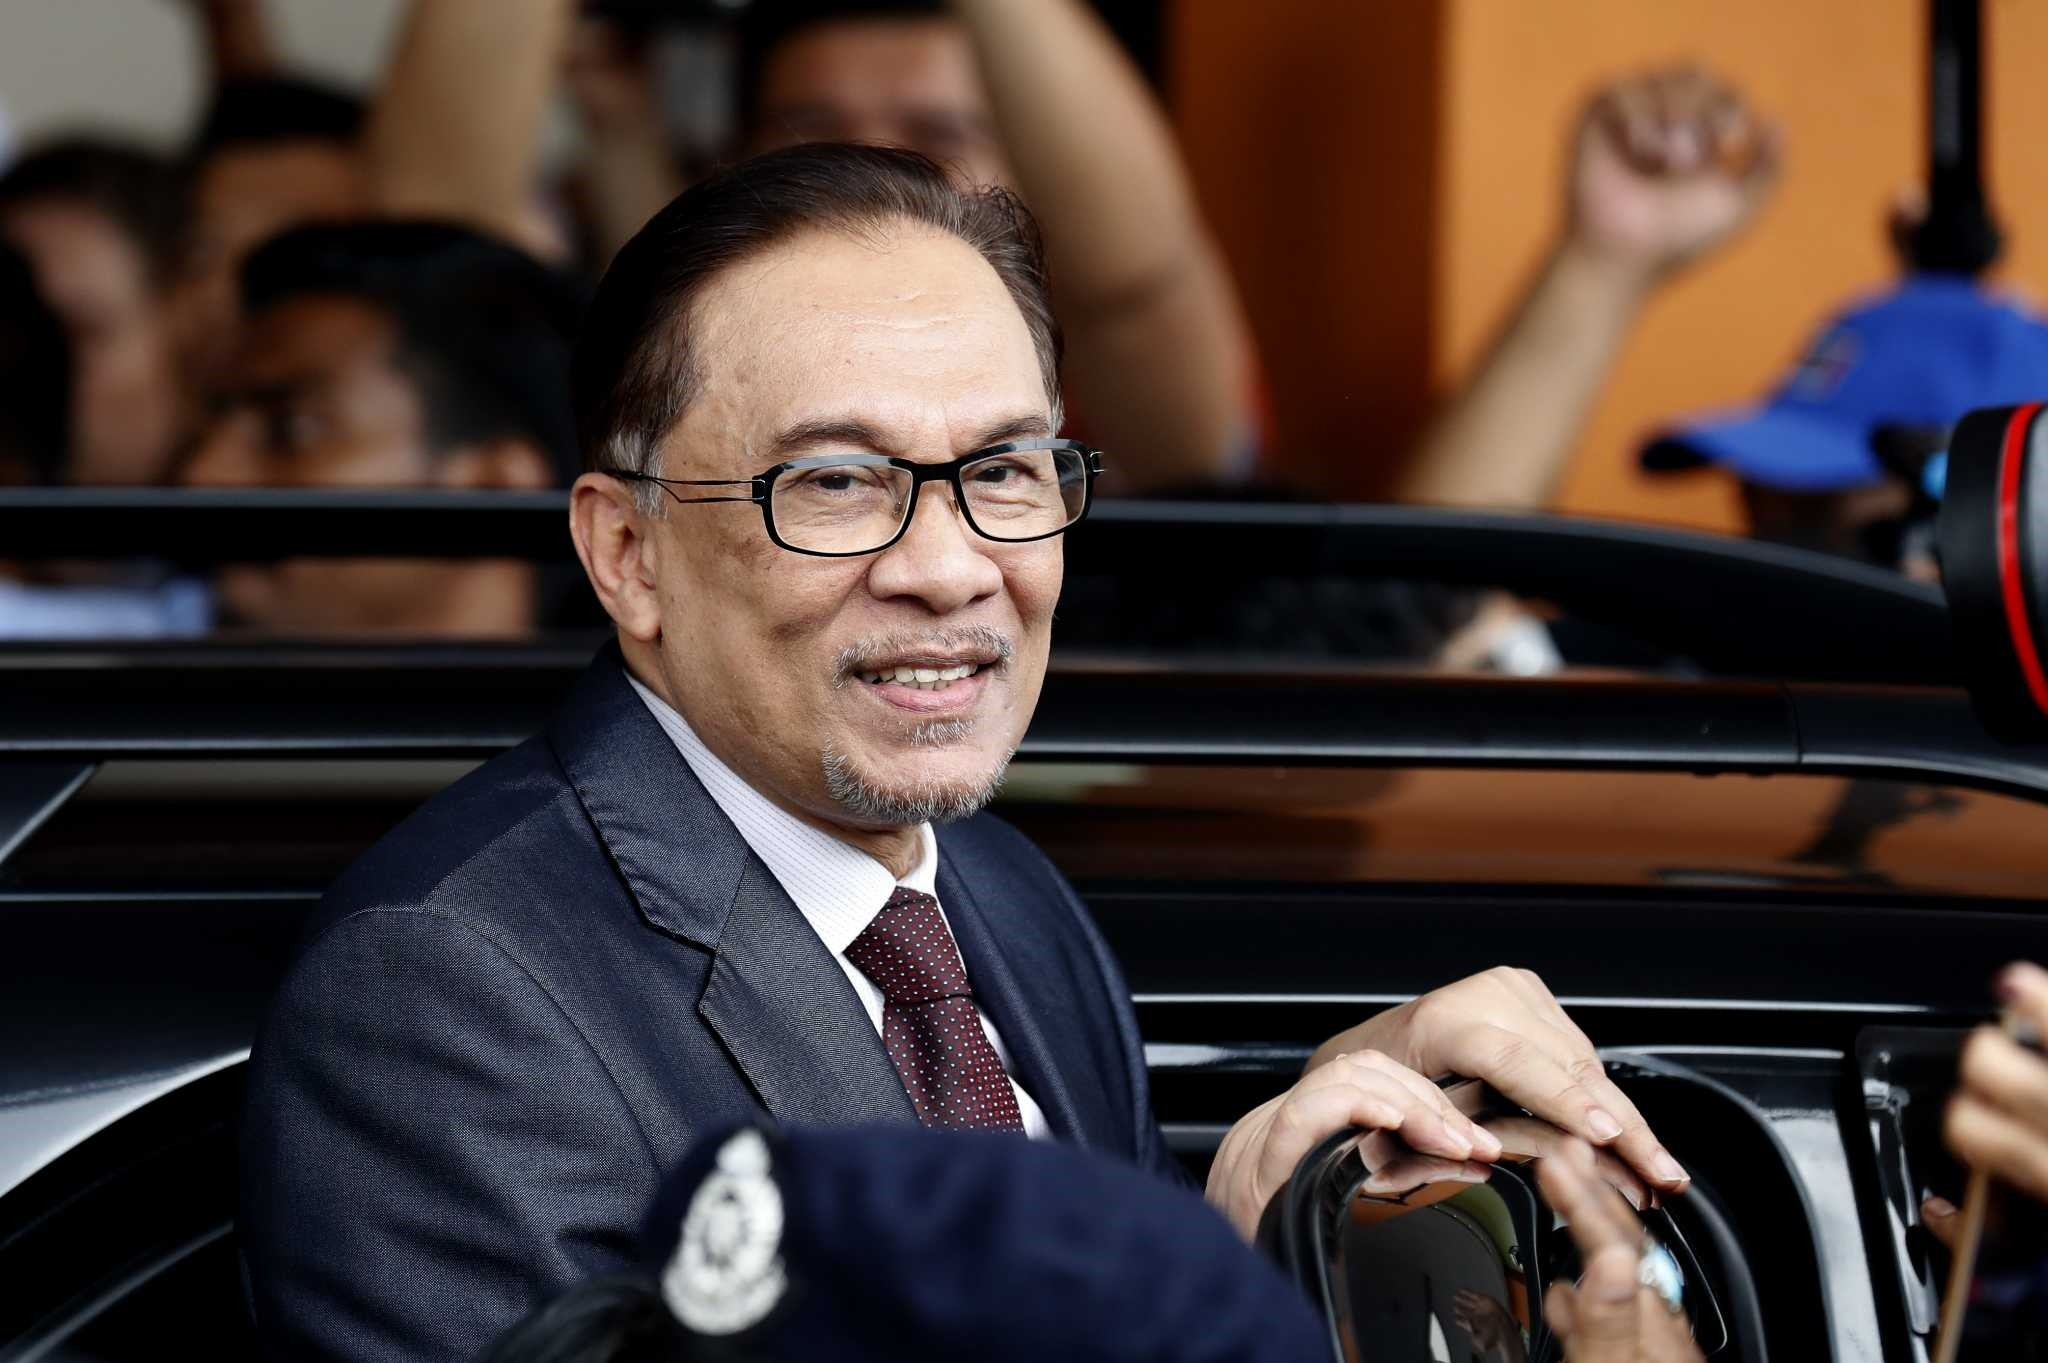 Newly released from prison, the future leader of Malaysia Anwar Ibrahim said he will adopt a start-from-scratch strategy for his country.